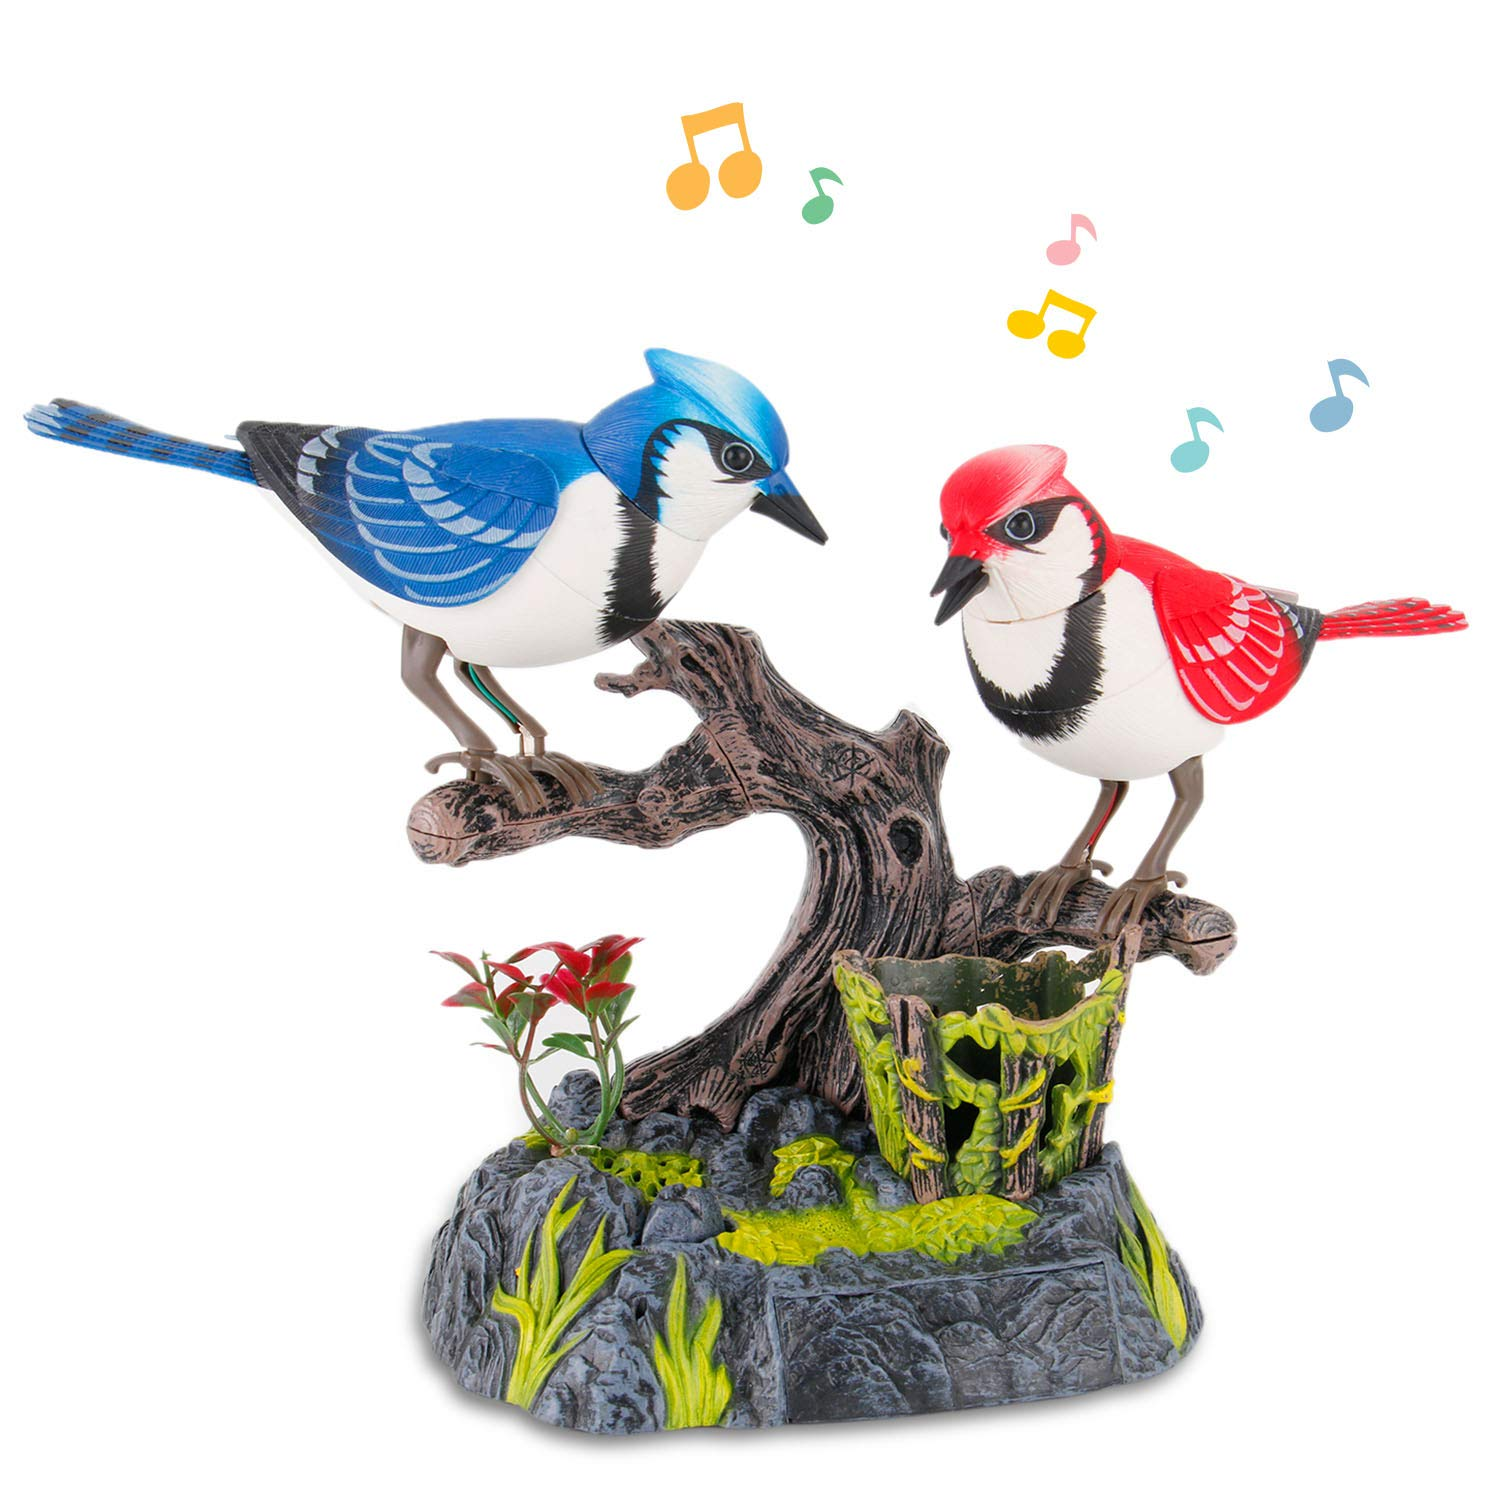 Liberty Imports Singing and Chirping Birds - Realistic Sounds and Movements (Blue Jays) by Liberty Imports (Image #1)